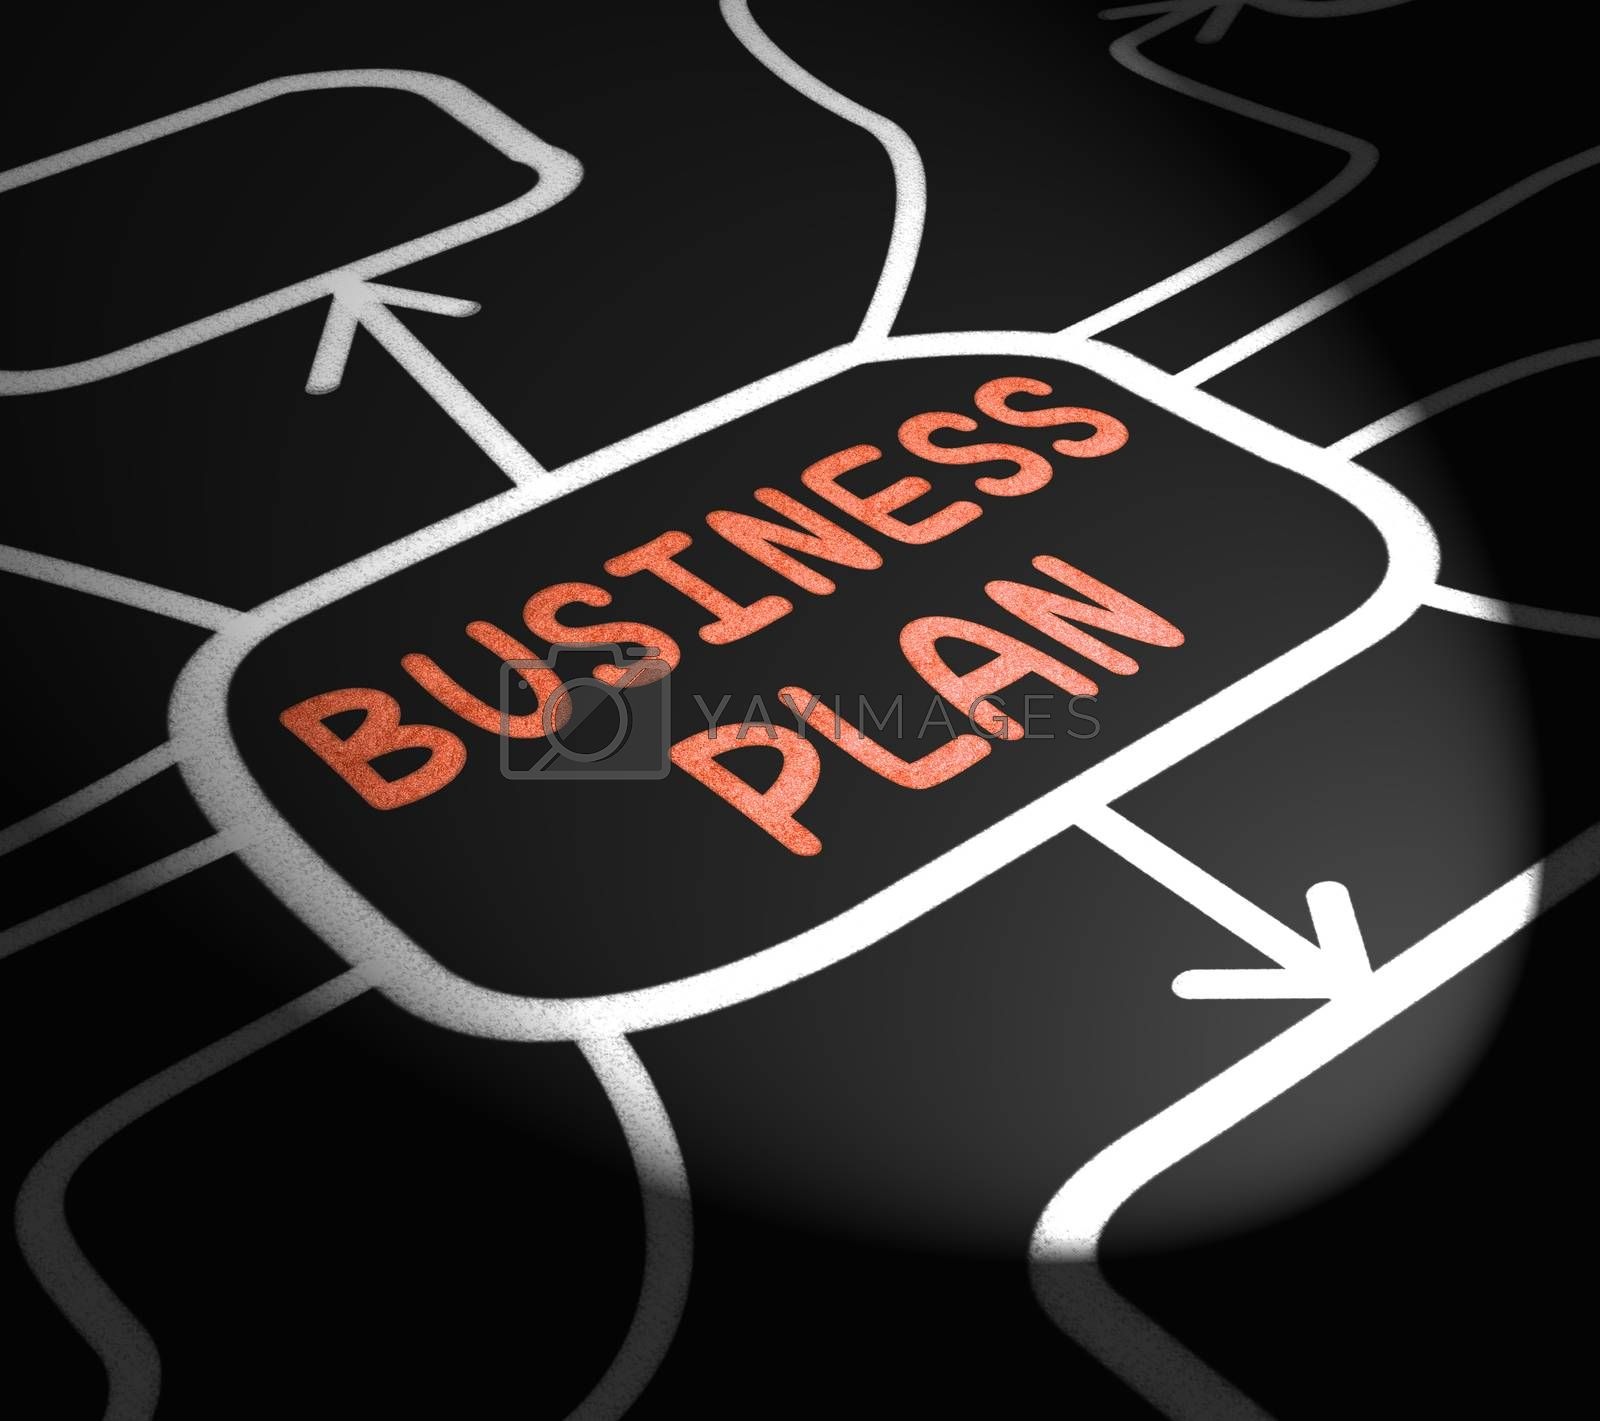 Business Plan Arrows Means Goals And Strategies For Company by stuartmiles